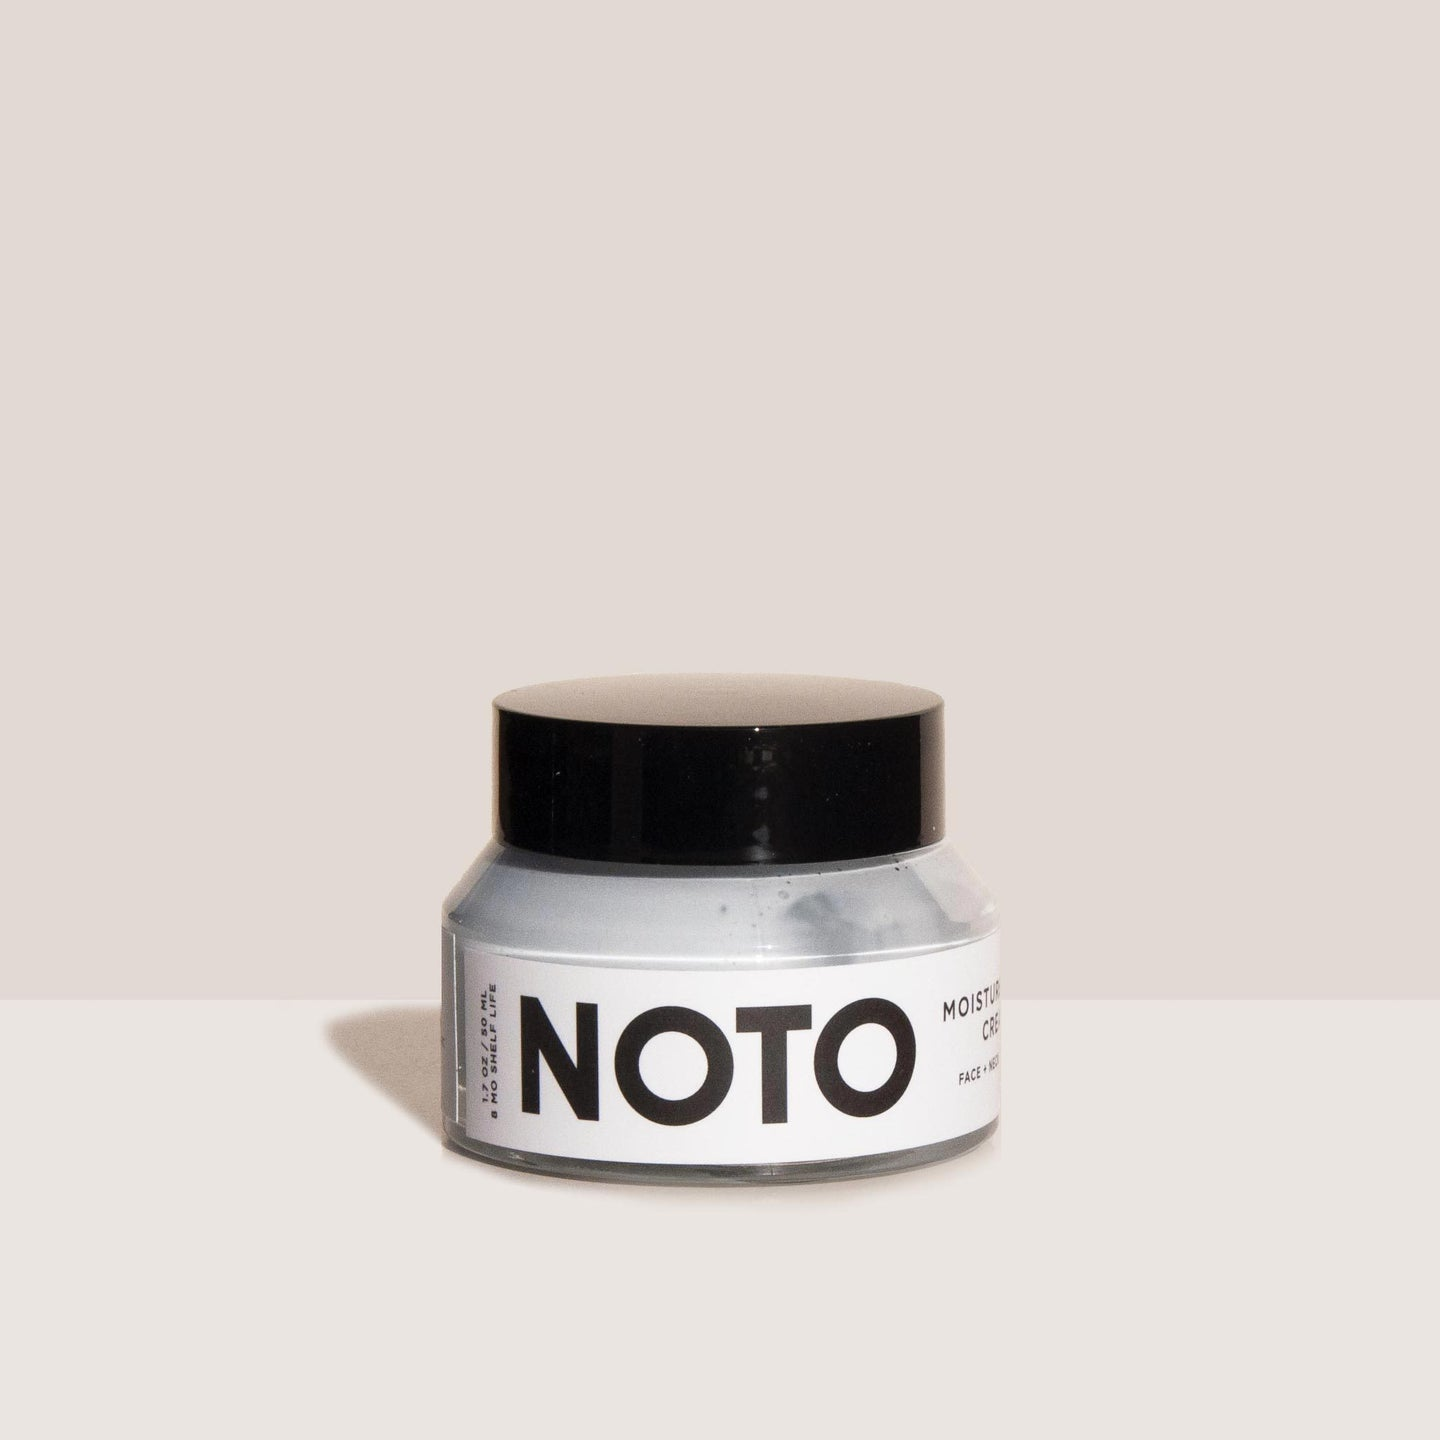 NOTO Botanics - Moisture Riser Cream, available at LCD.